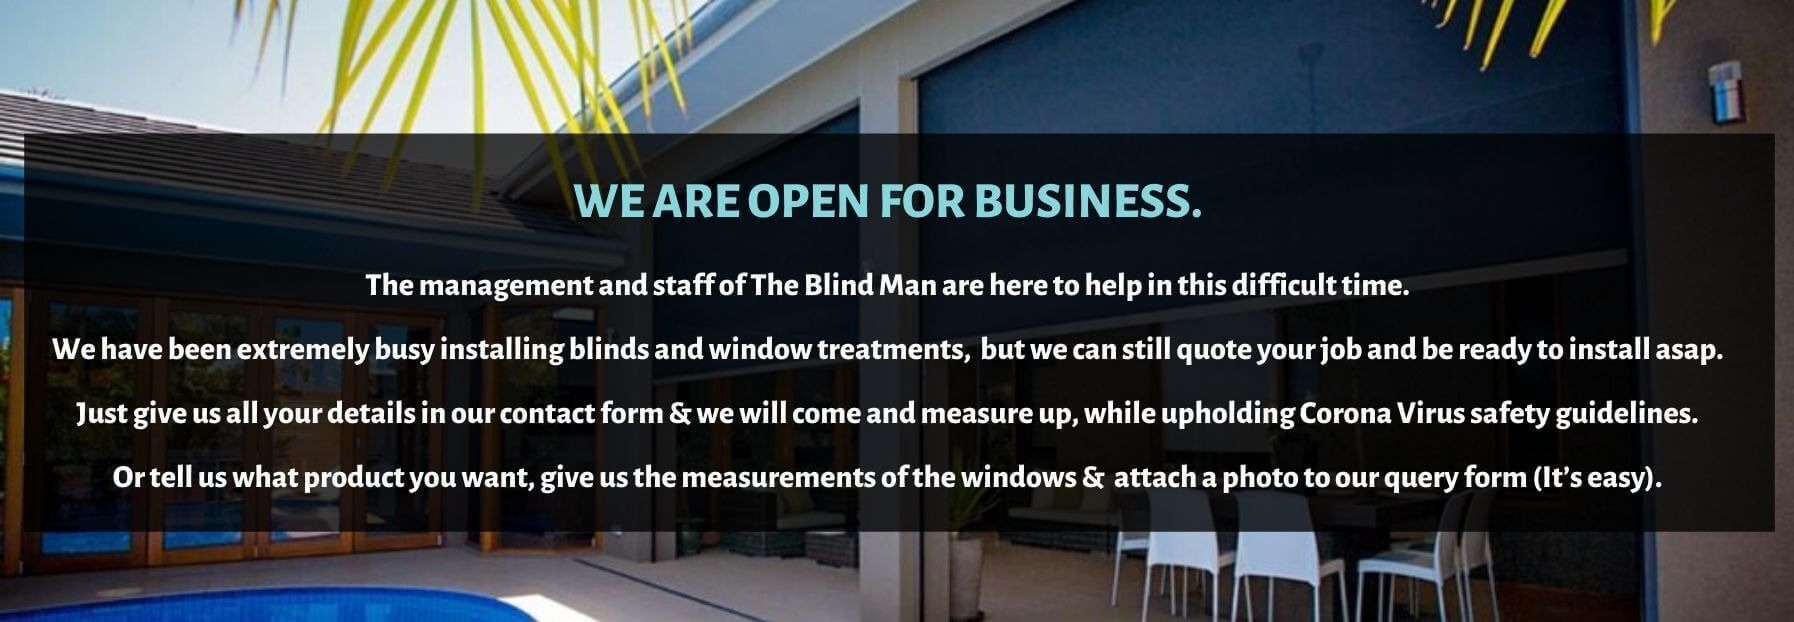 The Blind Man is Open For Business - Enquire today for blinds for your home